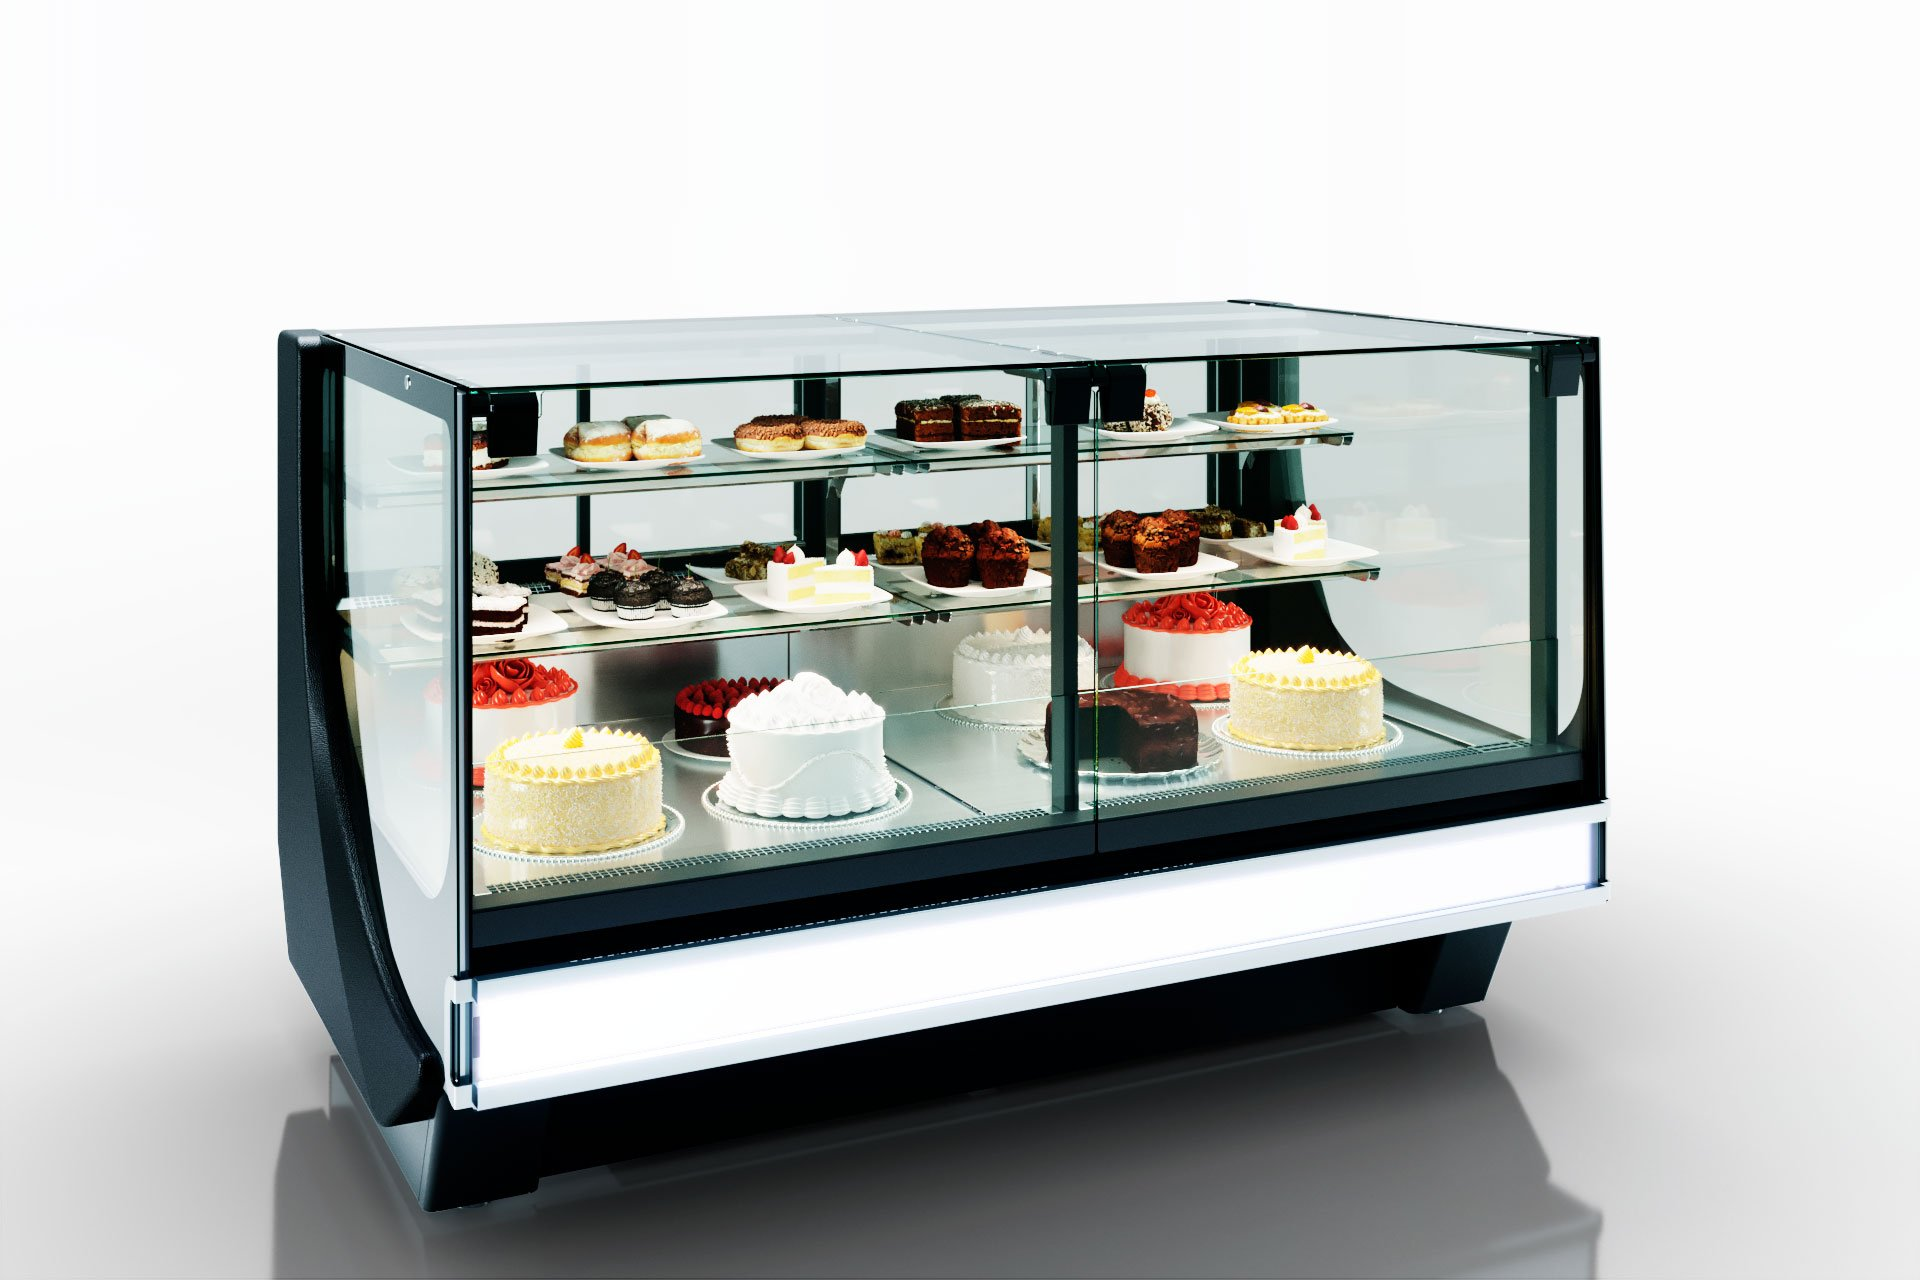 Counters Missouri cold diamond MC 115 patisserie PS 121-DLM